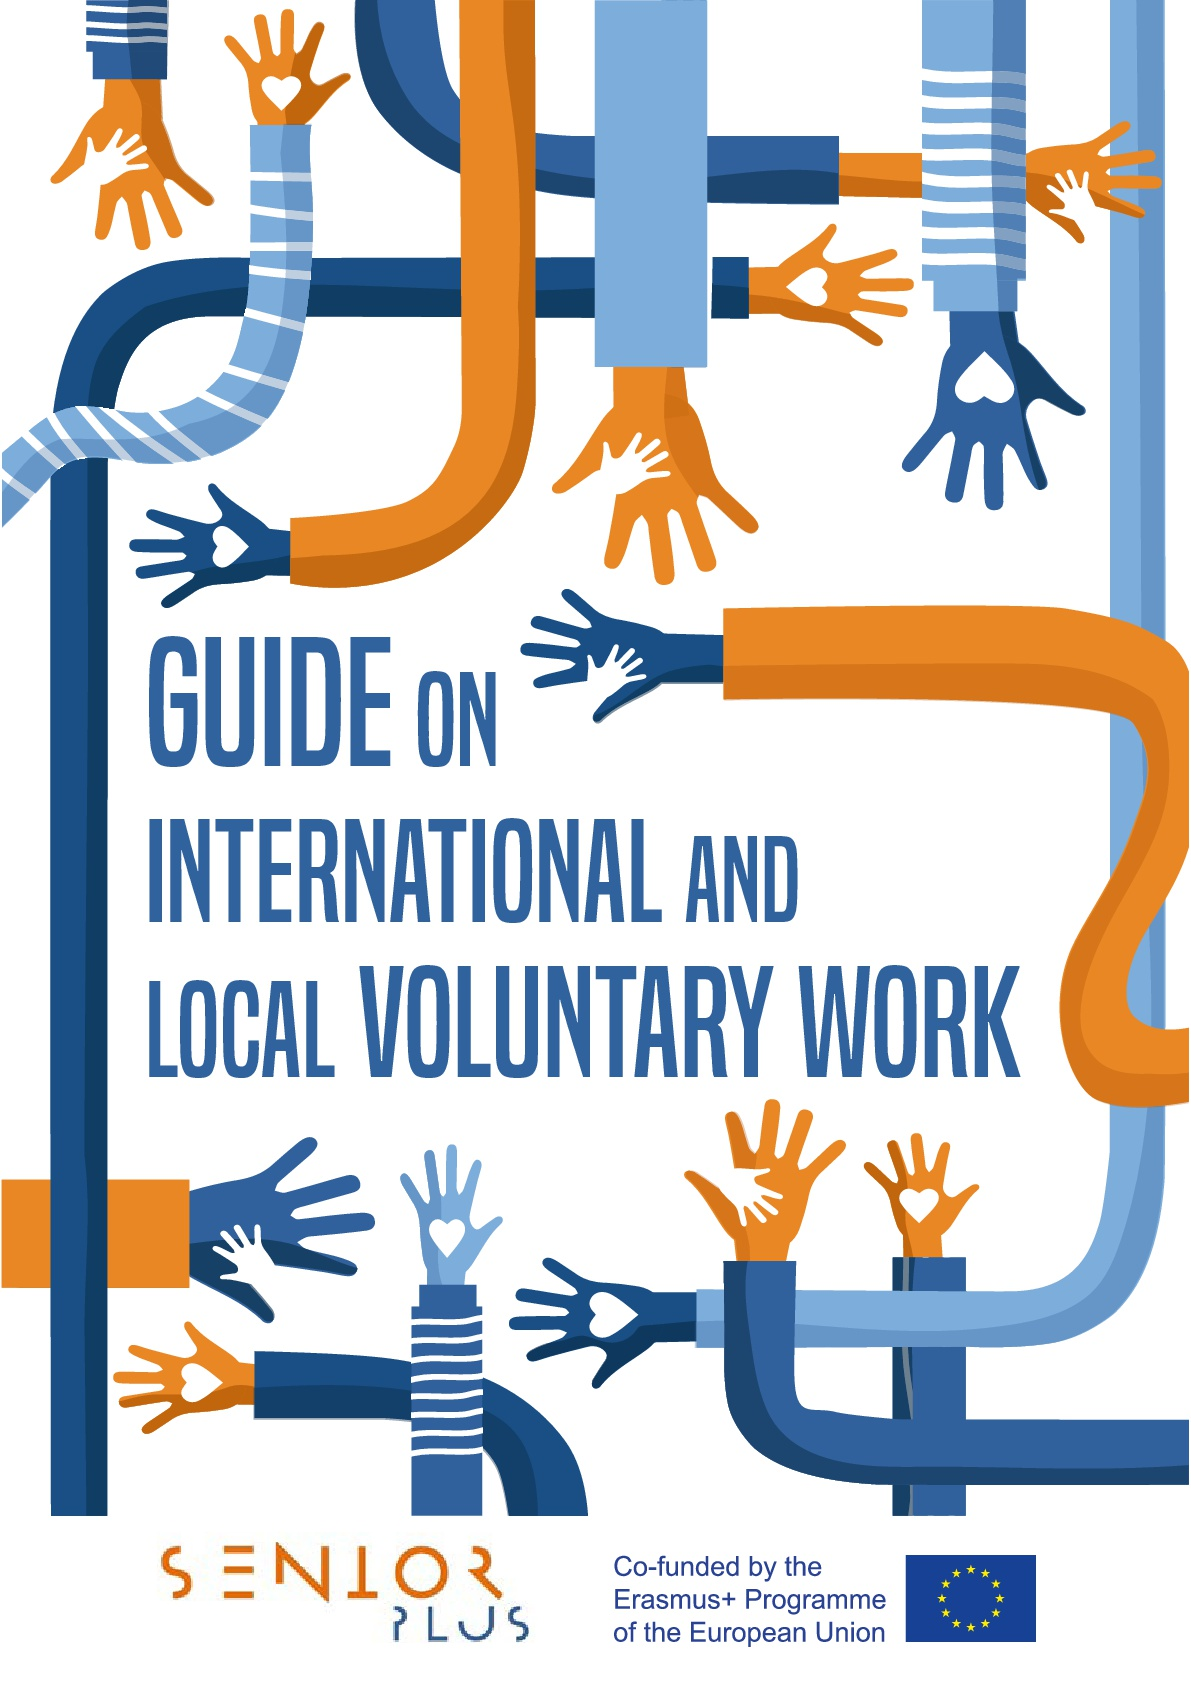 (EN) Guide on International and Local Voluntary Work